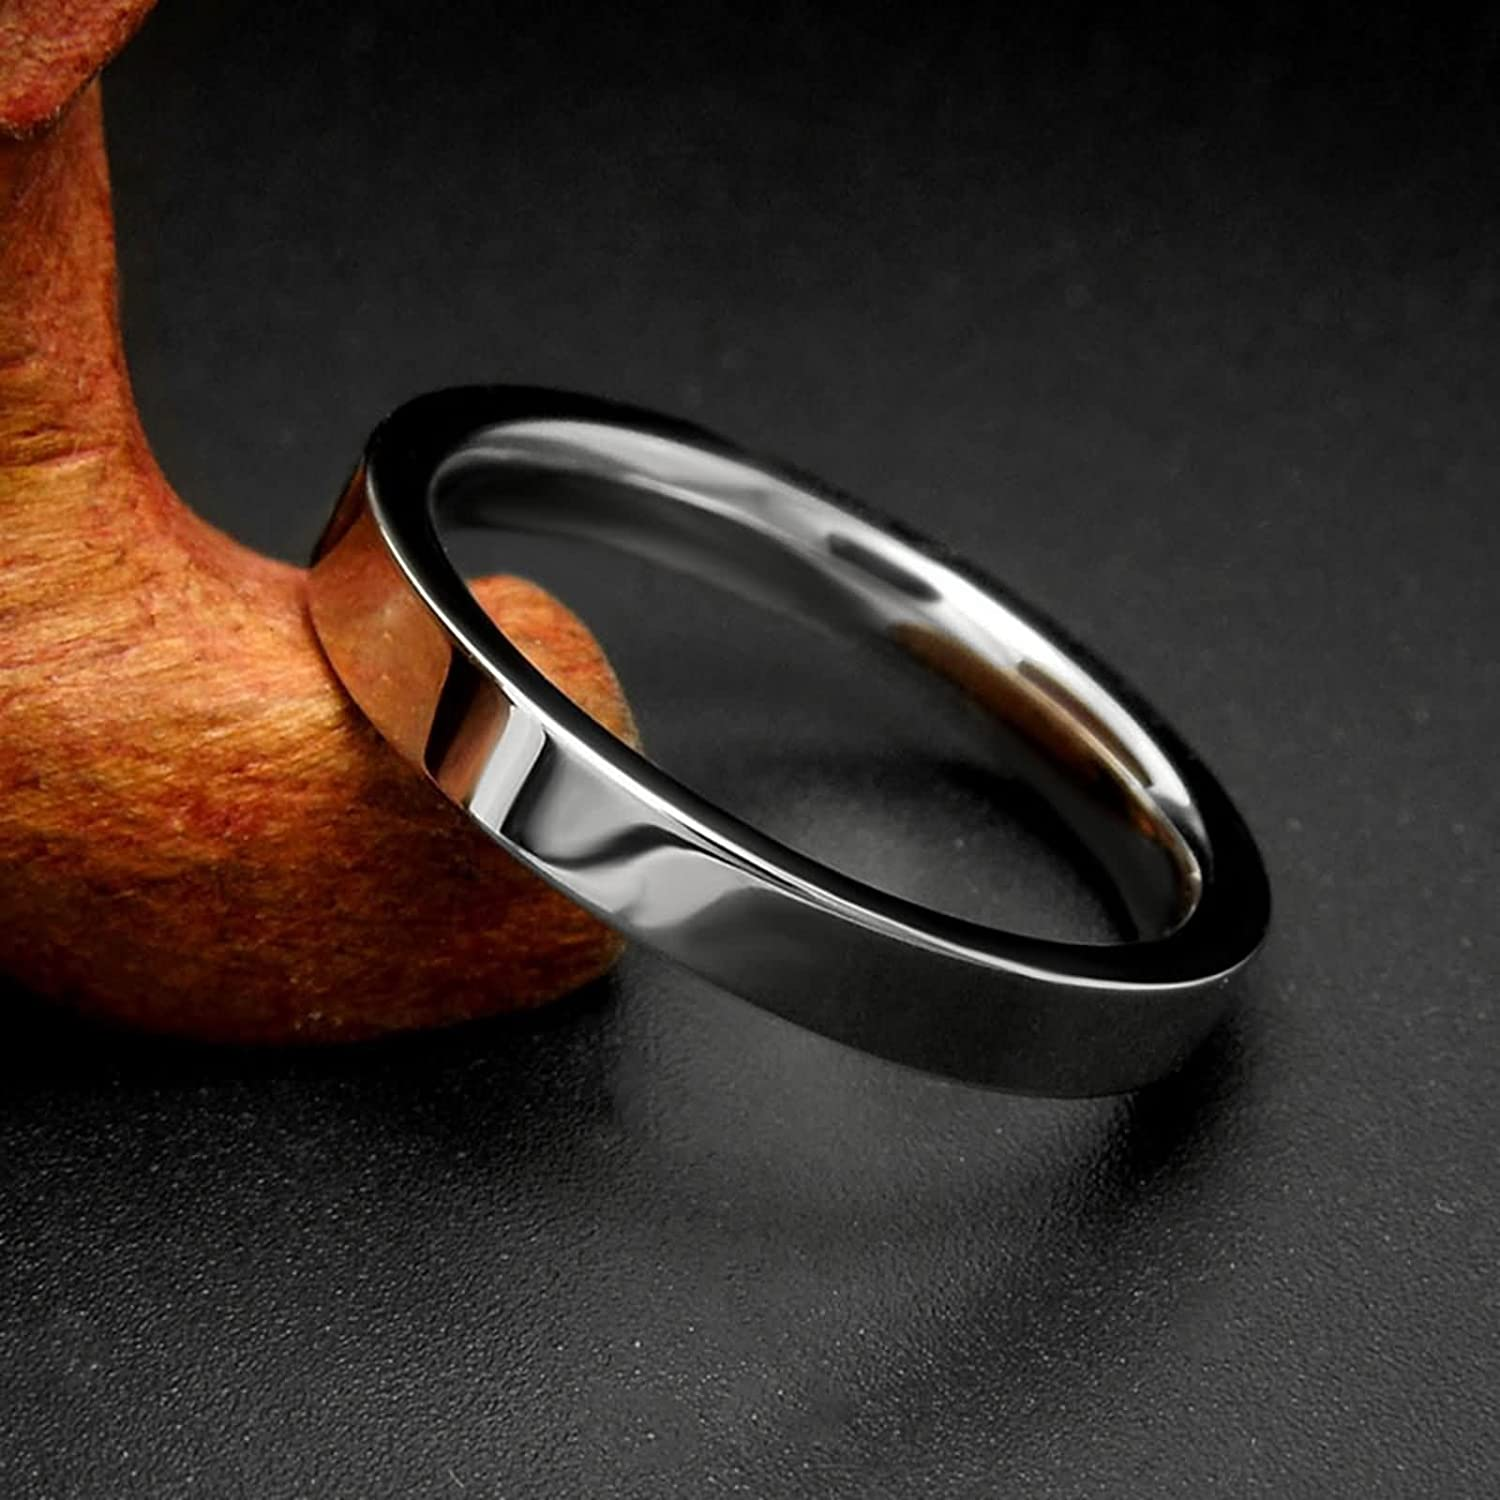 Bishilin Stainless Steel Ring for Men Design 3MM Round Polished Ring Wedding Band Him Silver Rings Rock